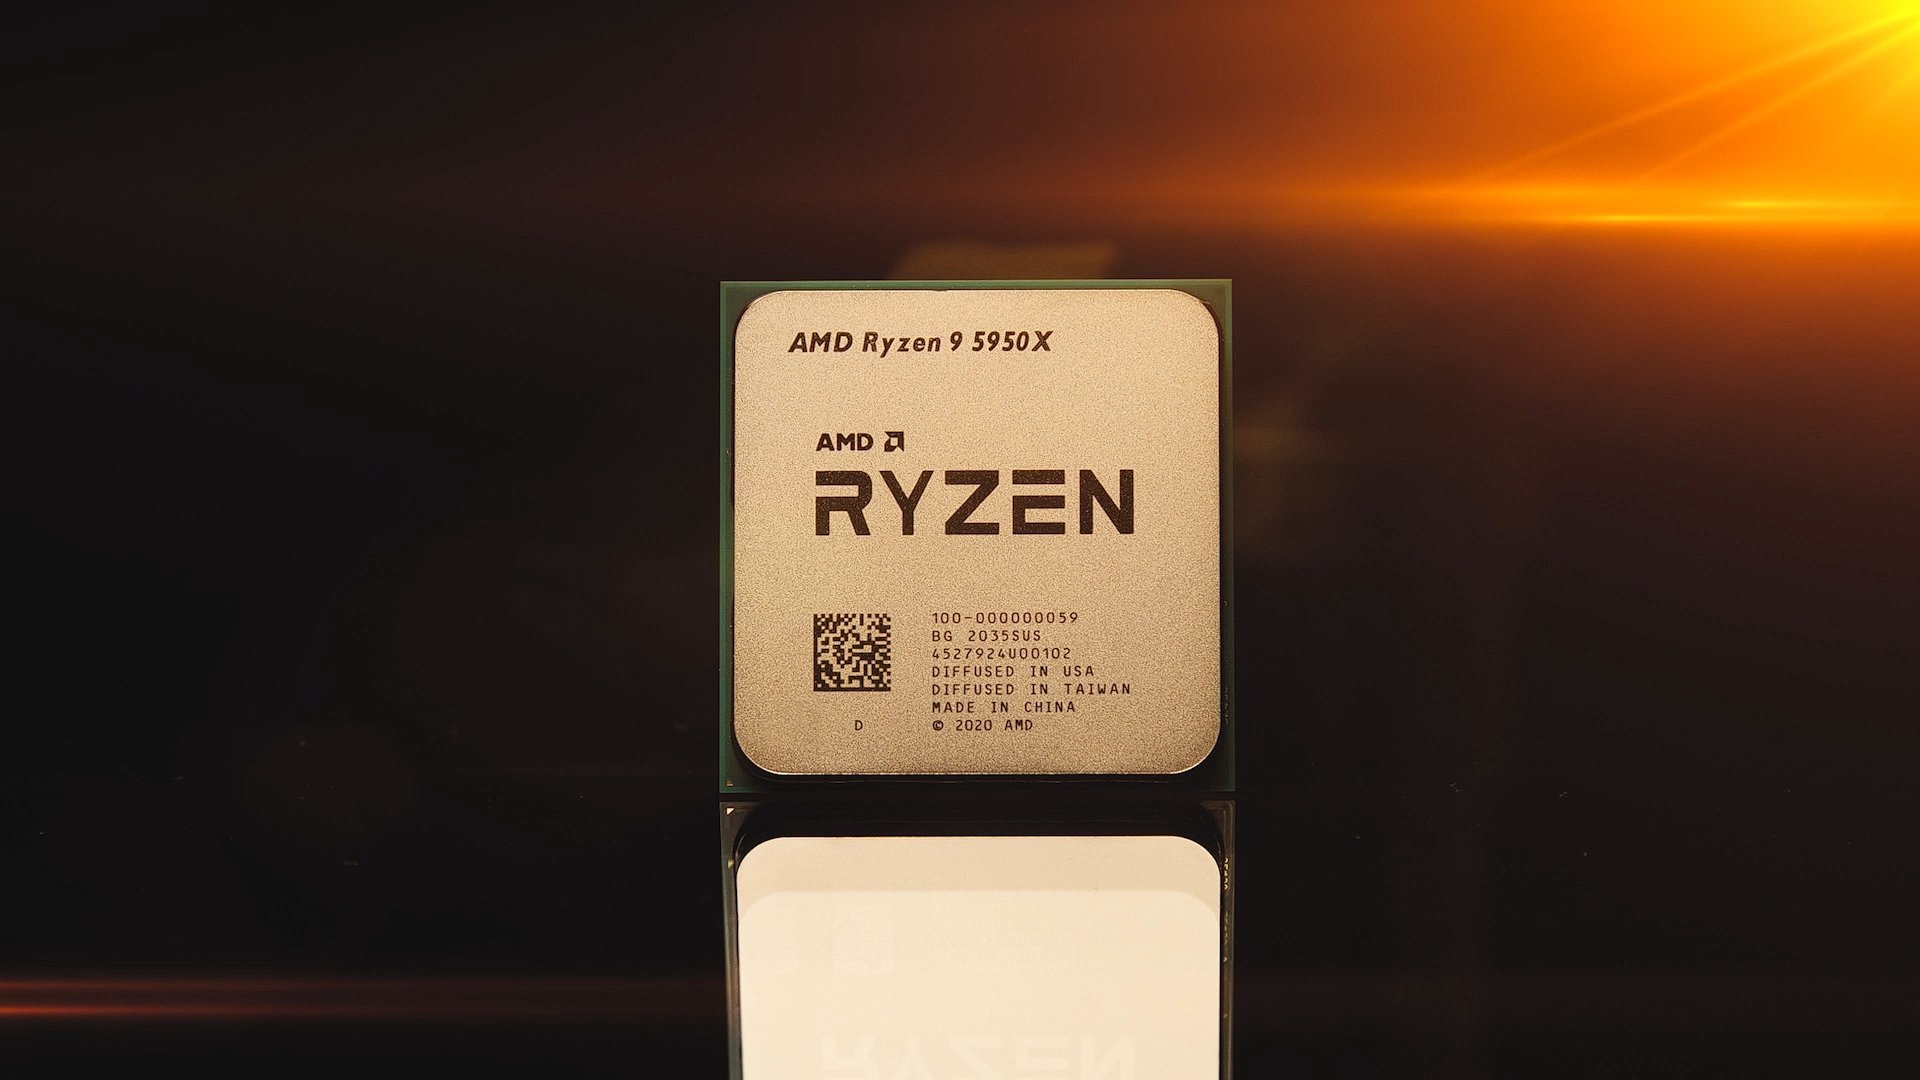 AMD Ryzen 9 5950X 16 Core Flagship CPU Di Benchmark lagi, Mengalahkan Intel's Top Core i9-10980XE 18 Core HEDT Chip